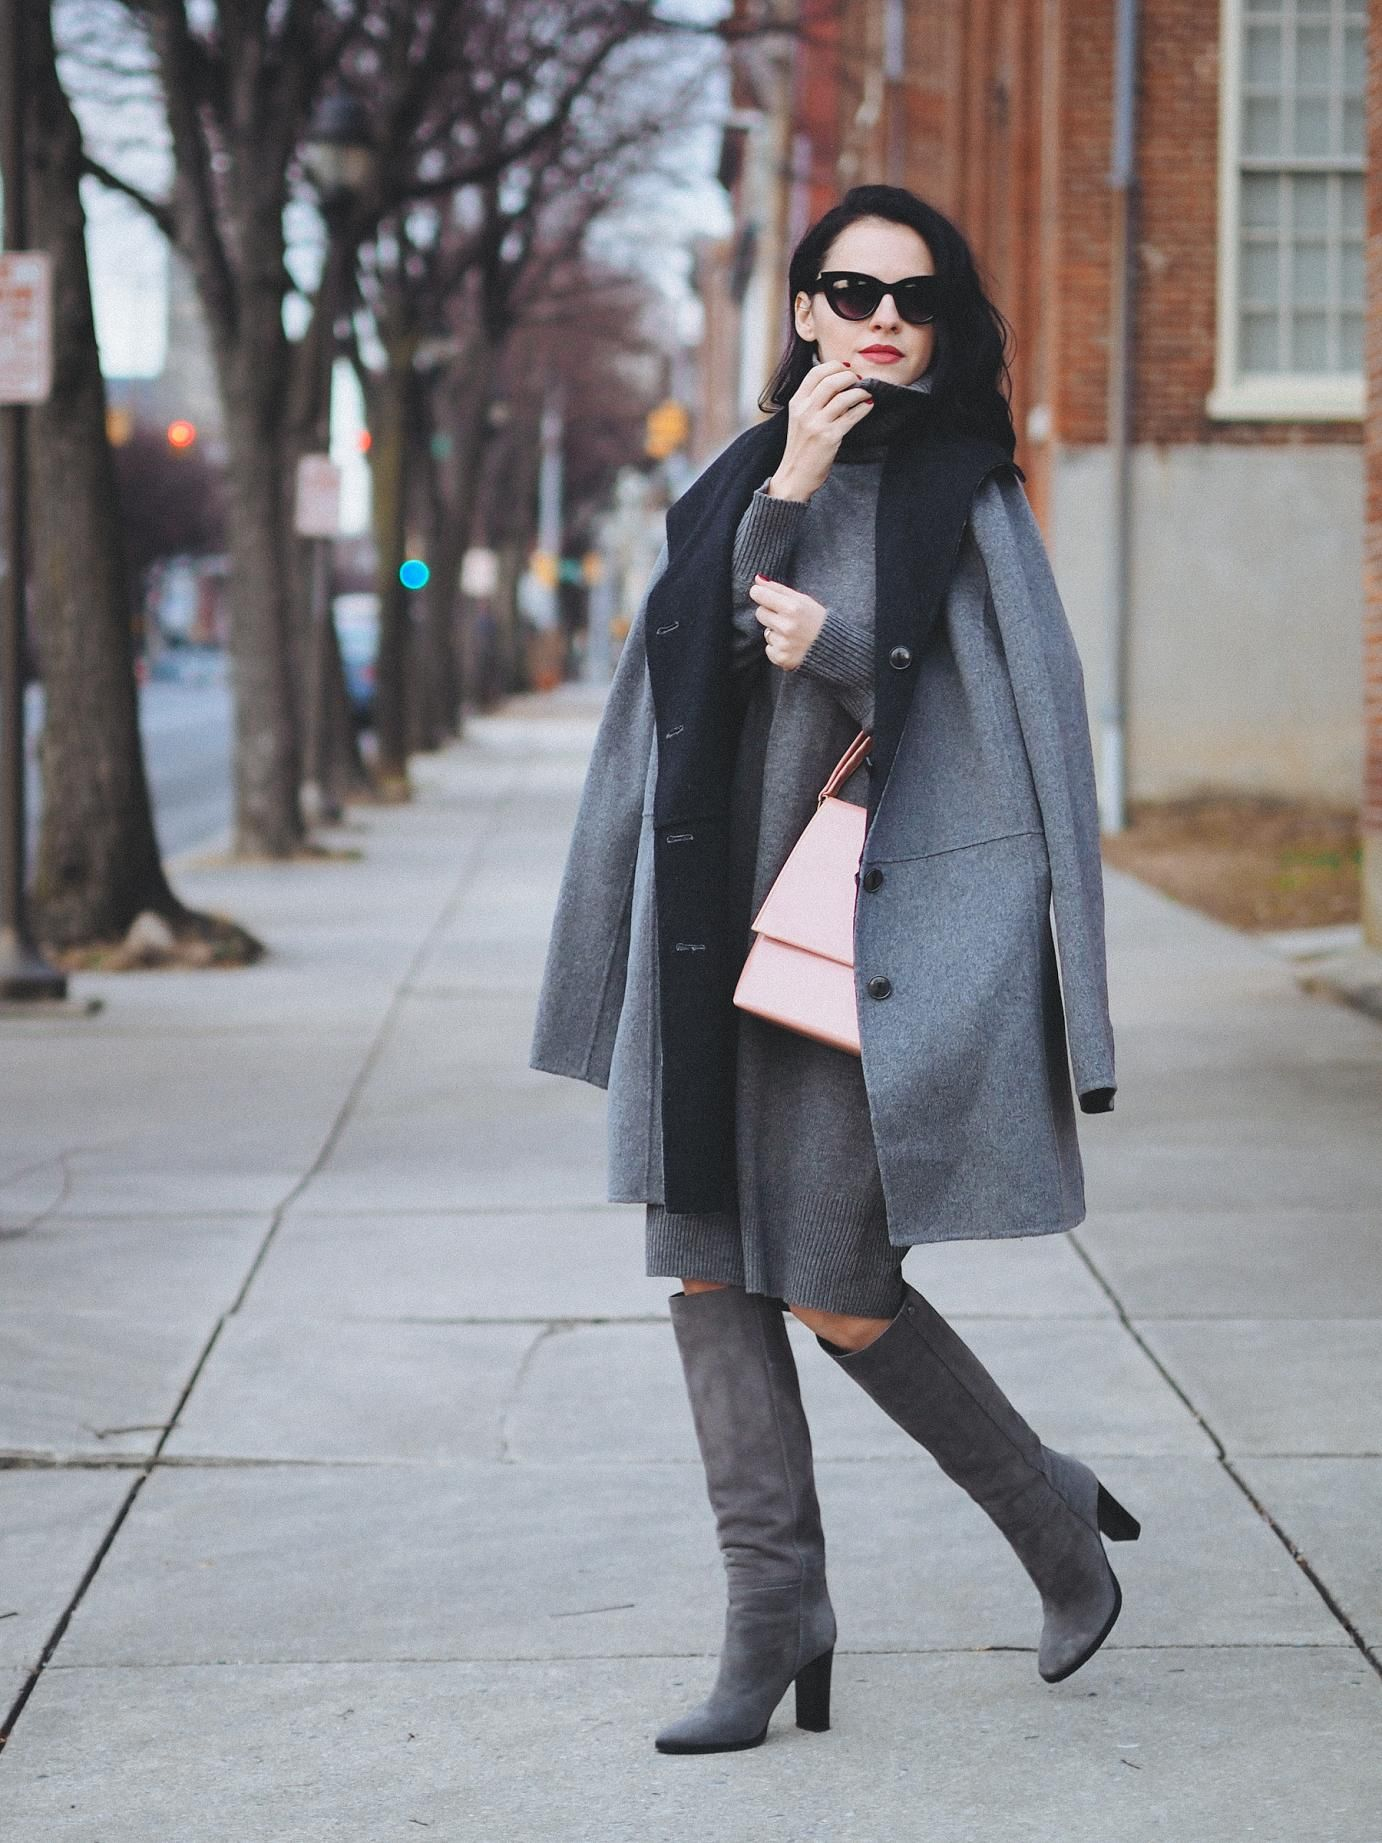 Bittersweet Colours Grey Boots Pinterest Gray Boots Gray And